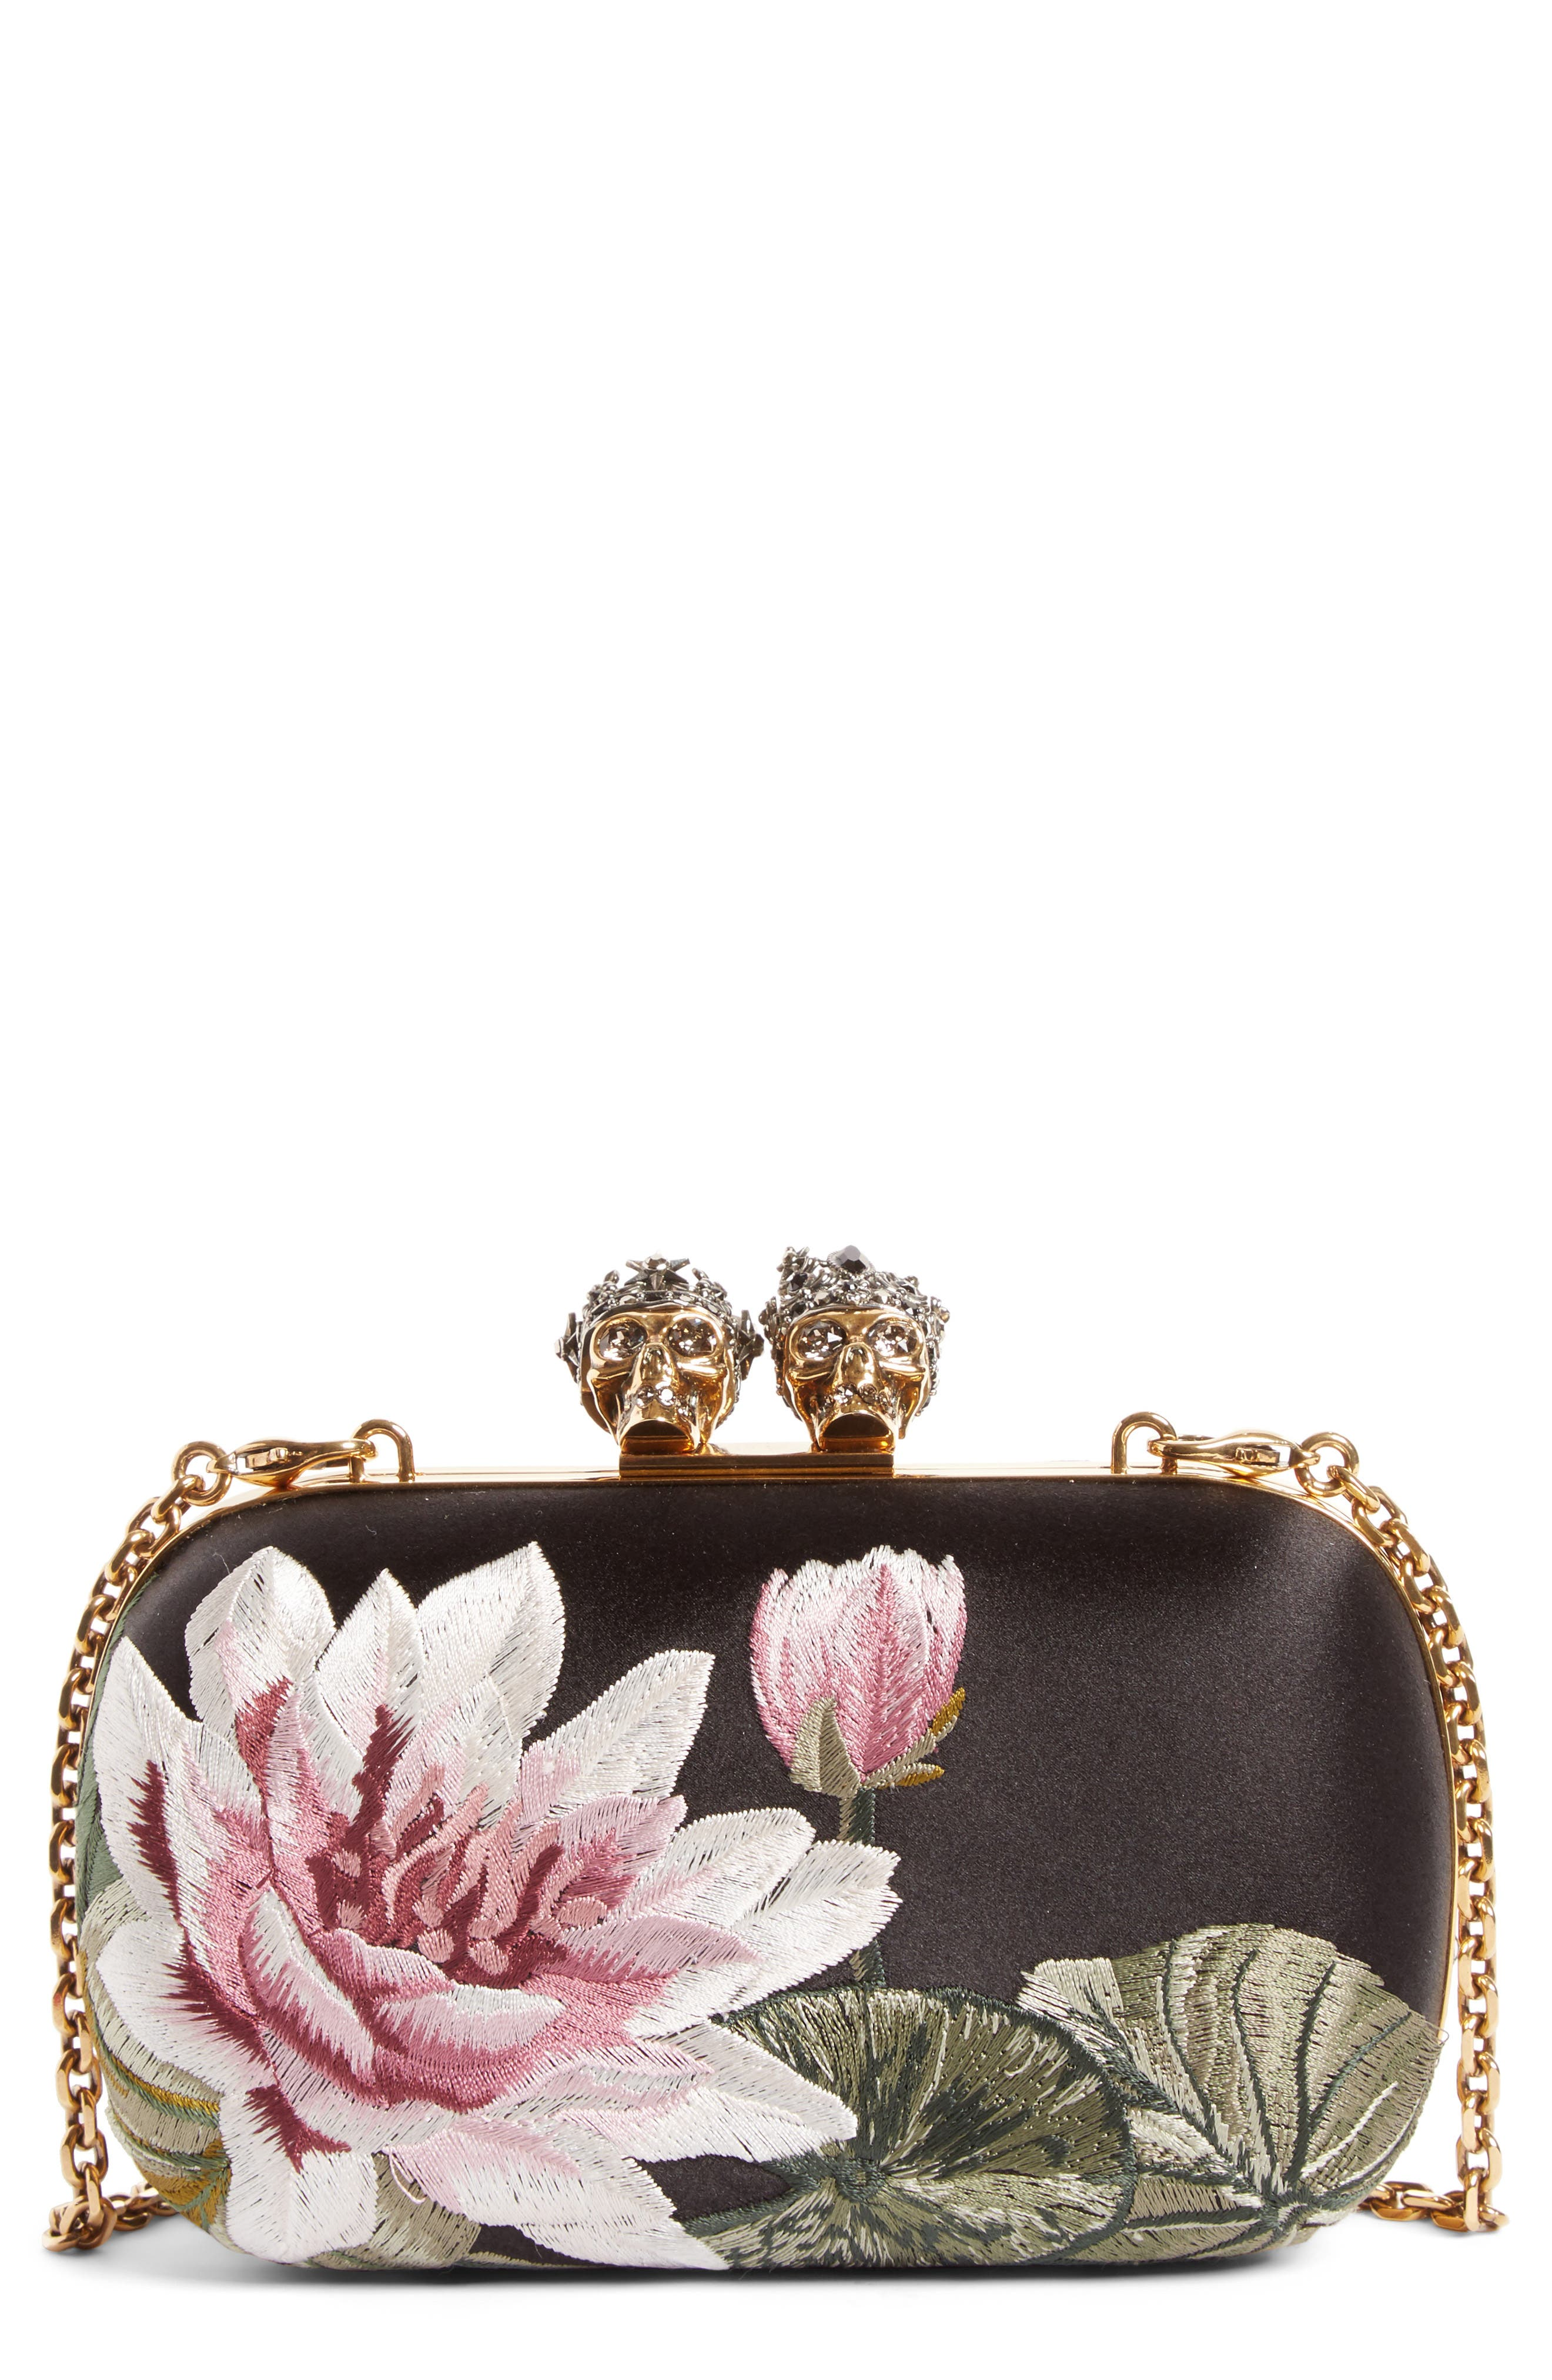 Queen & King Embroidered Satin Clutch,                             Main thumbnail 1, color,                             964